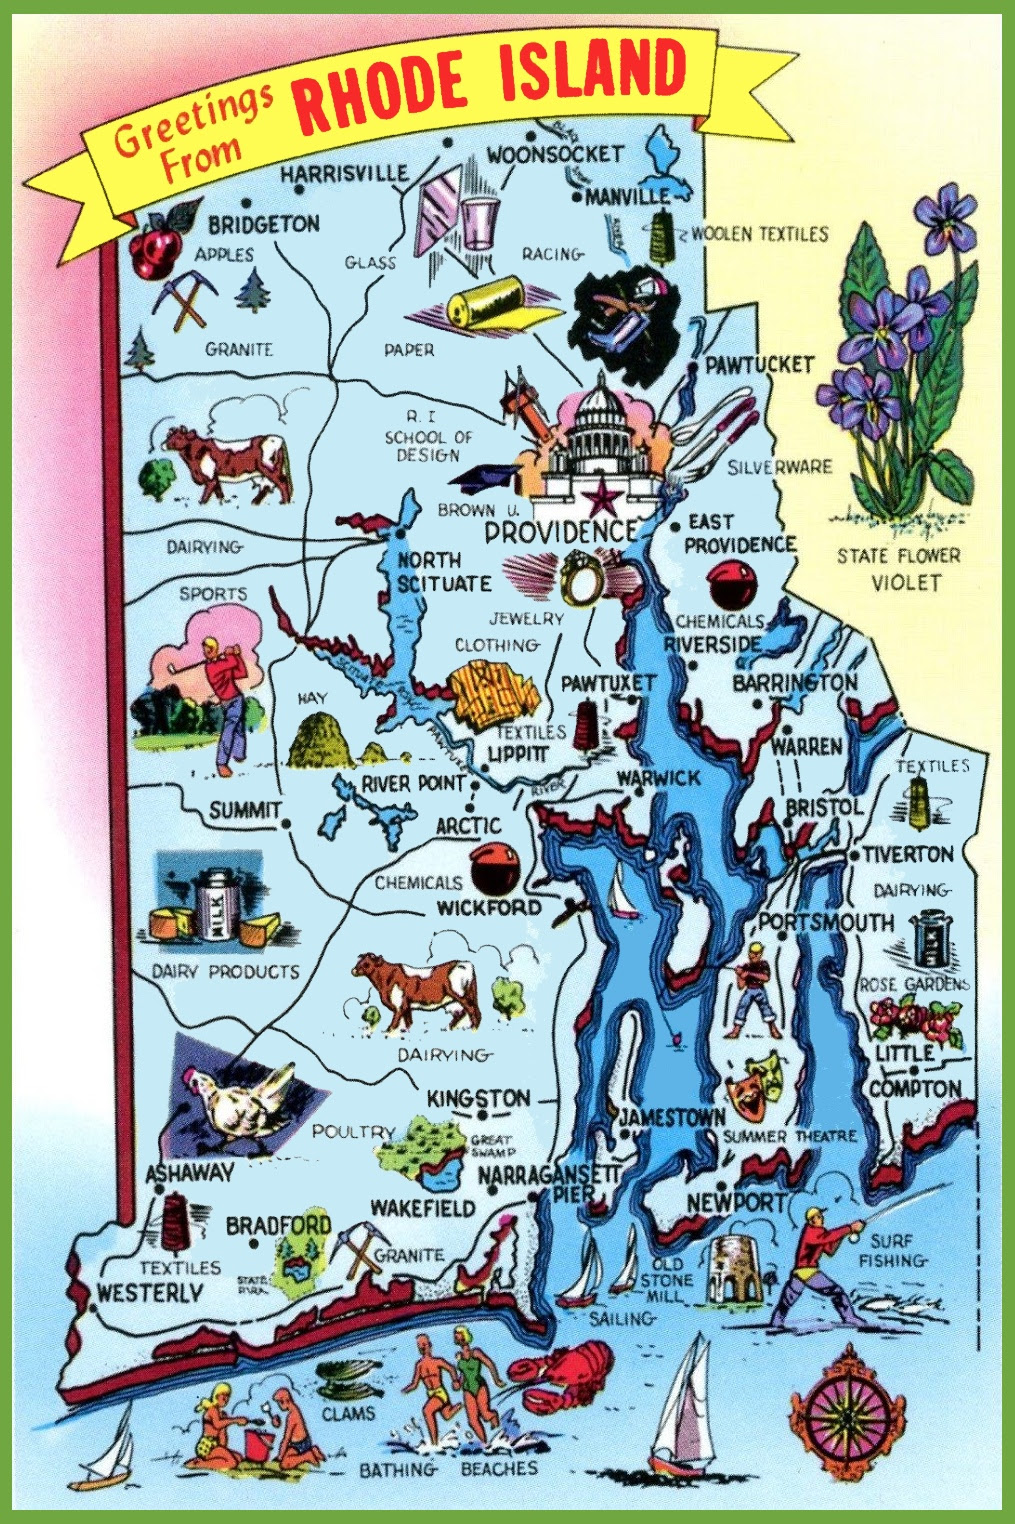 pictorial travel map of rhode island